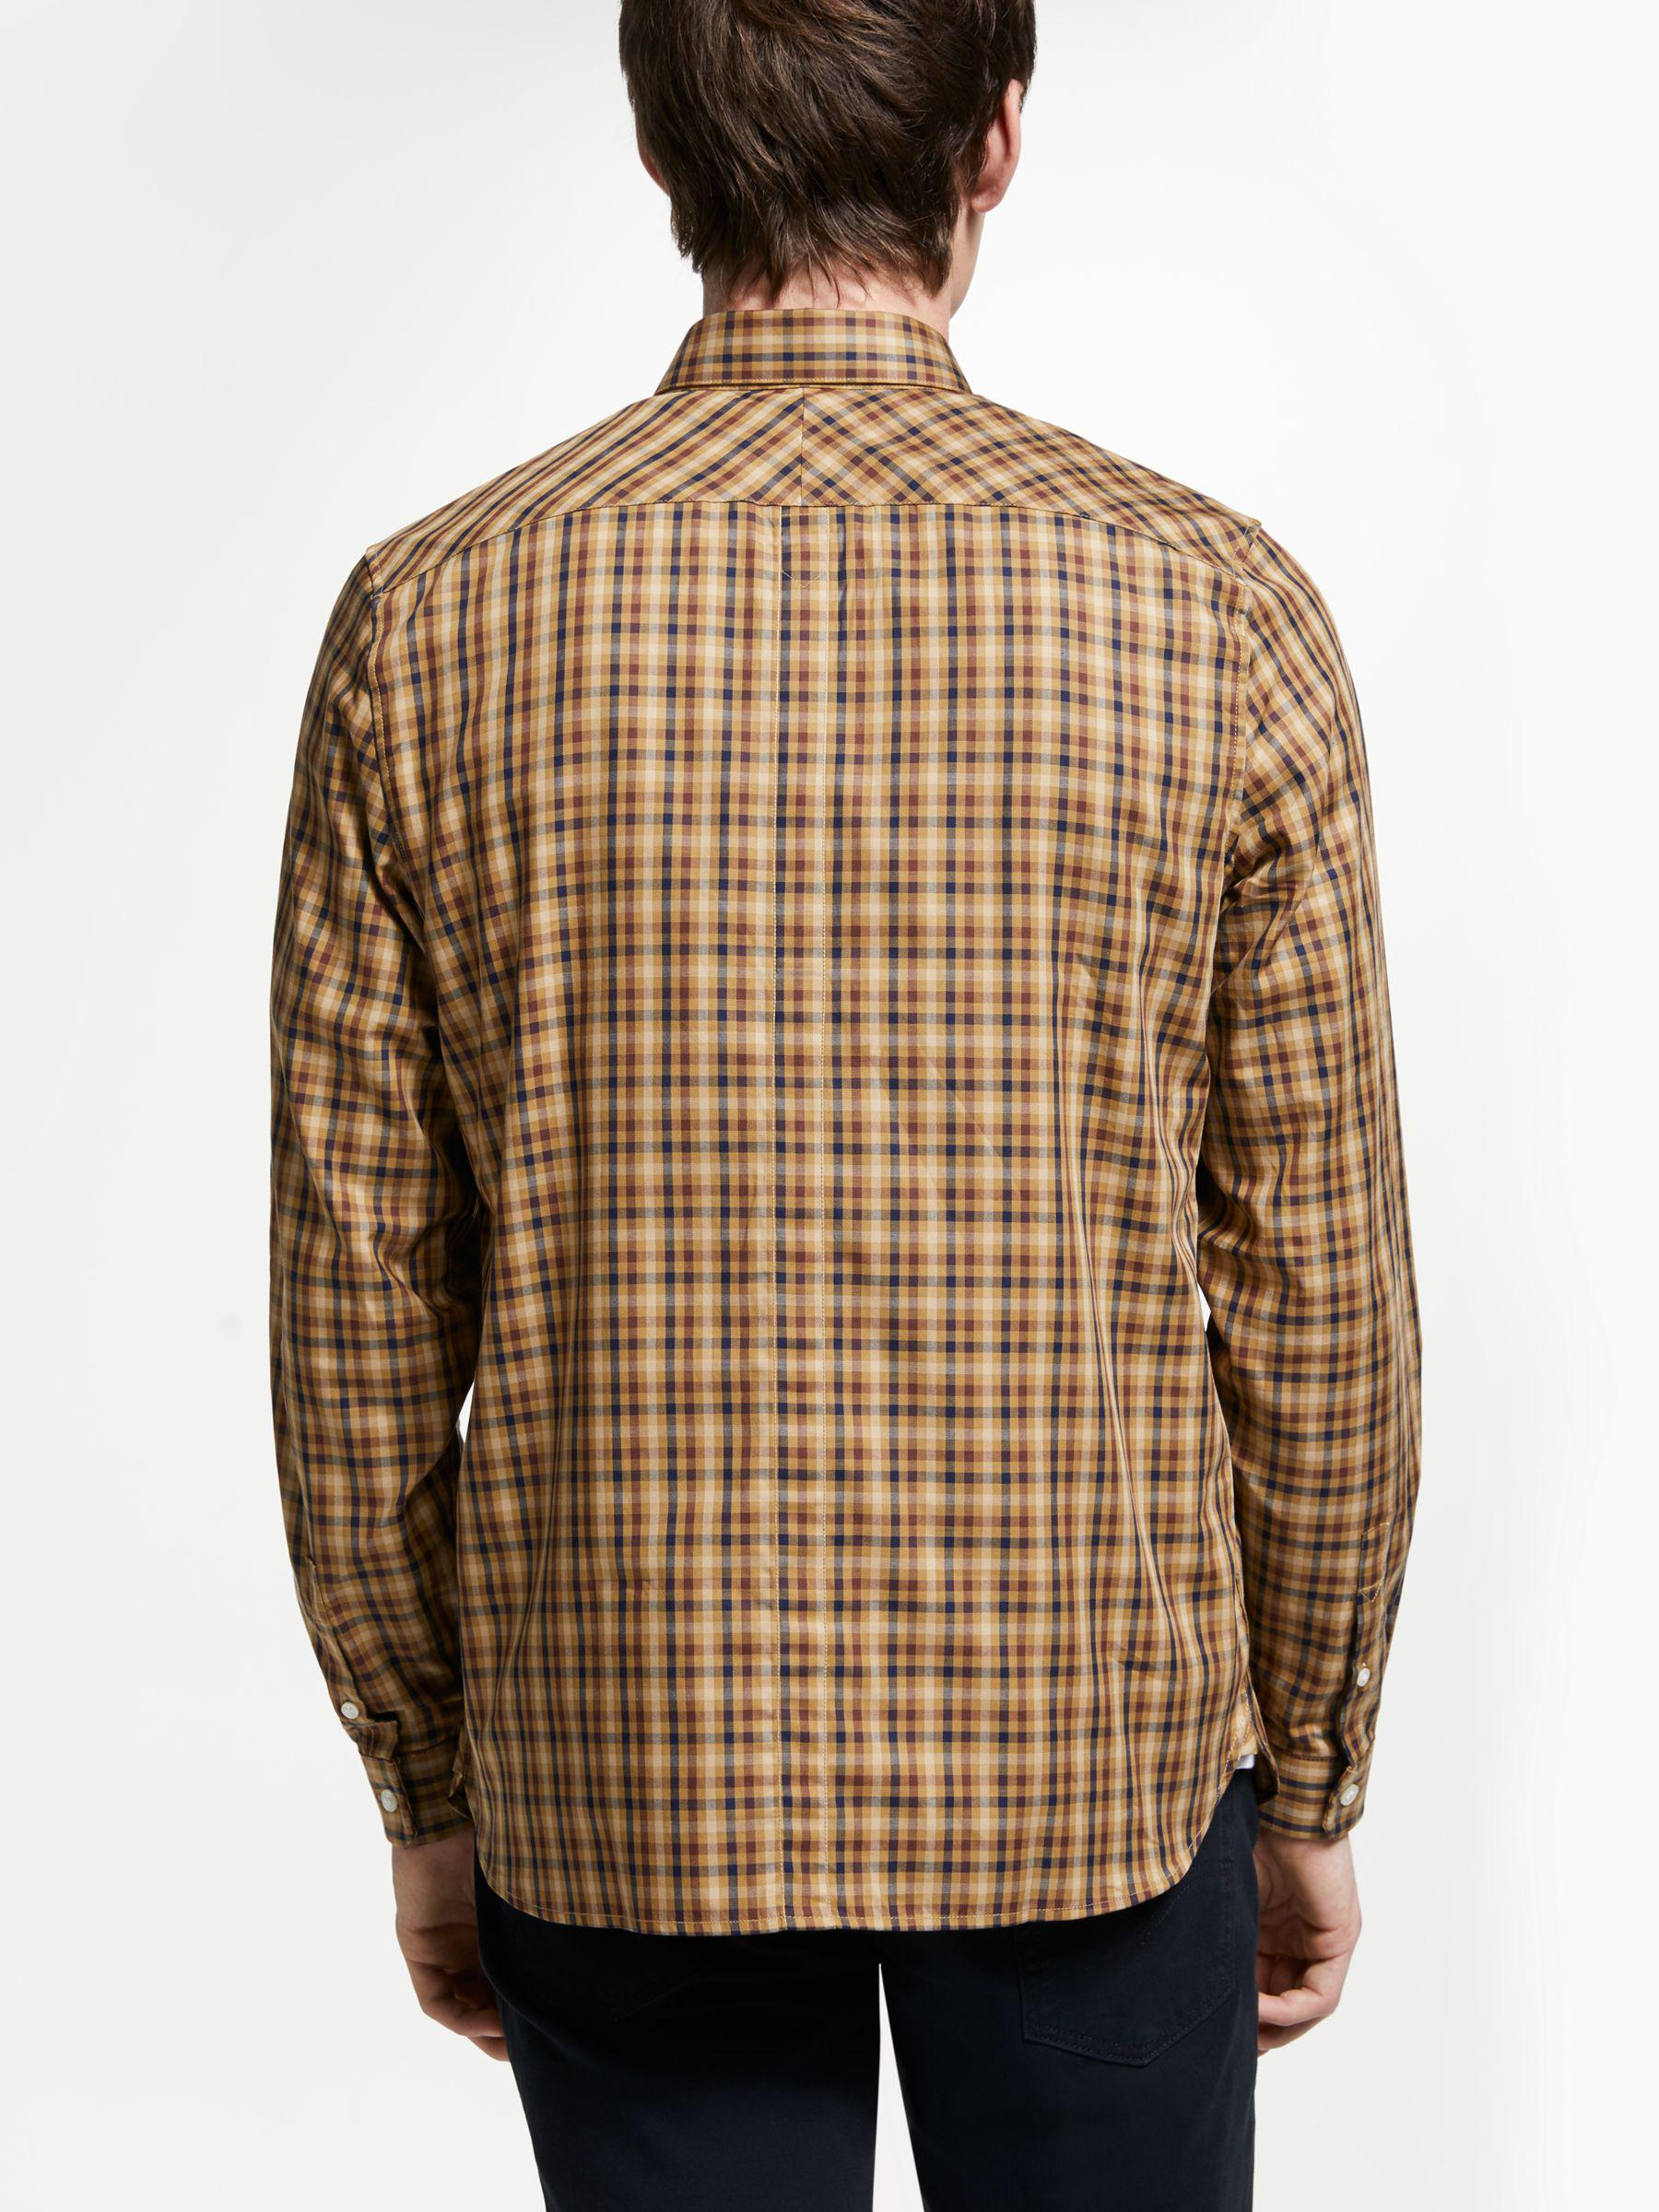 20a0b03a6 Fred Perry Twill Checked Long Sleeve Shirt for Men - Save 32% - Lyst